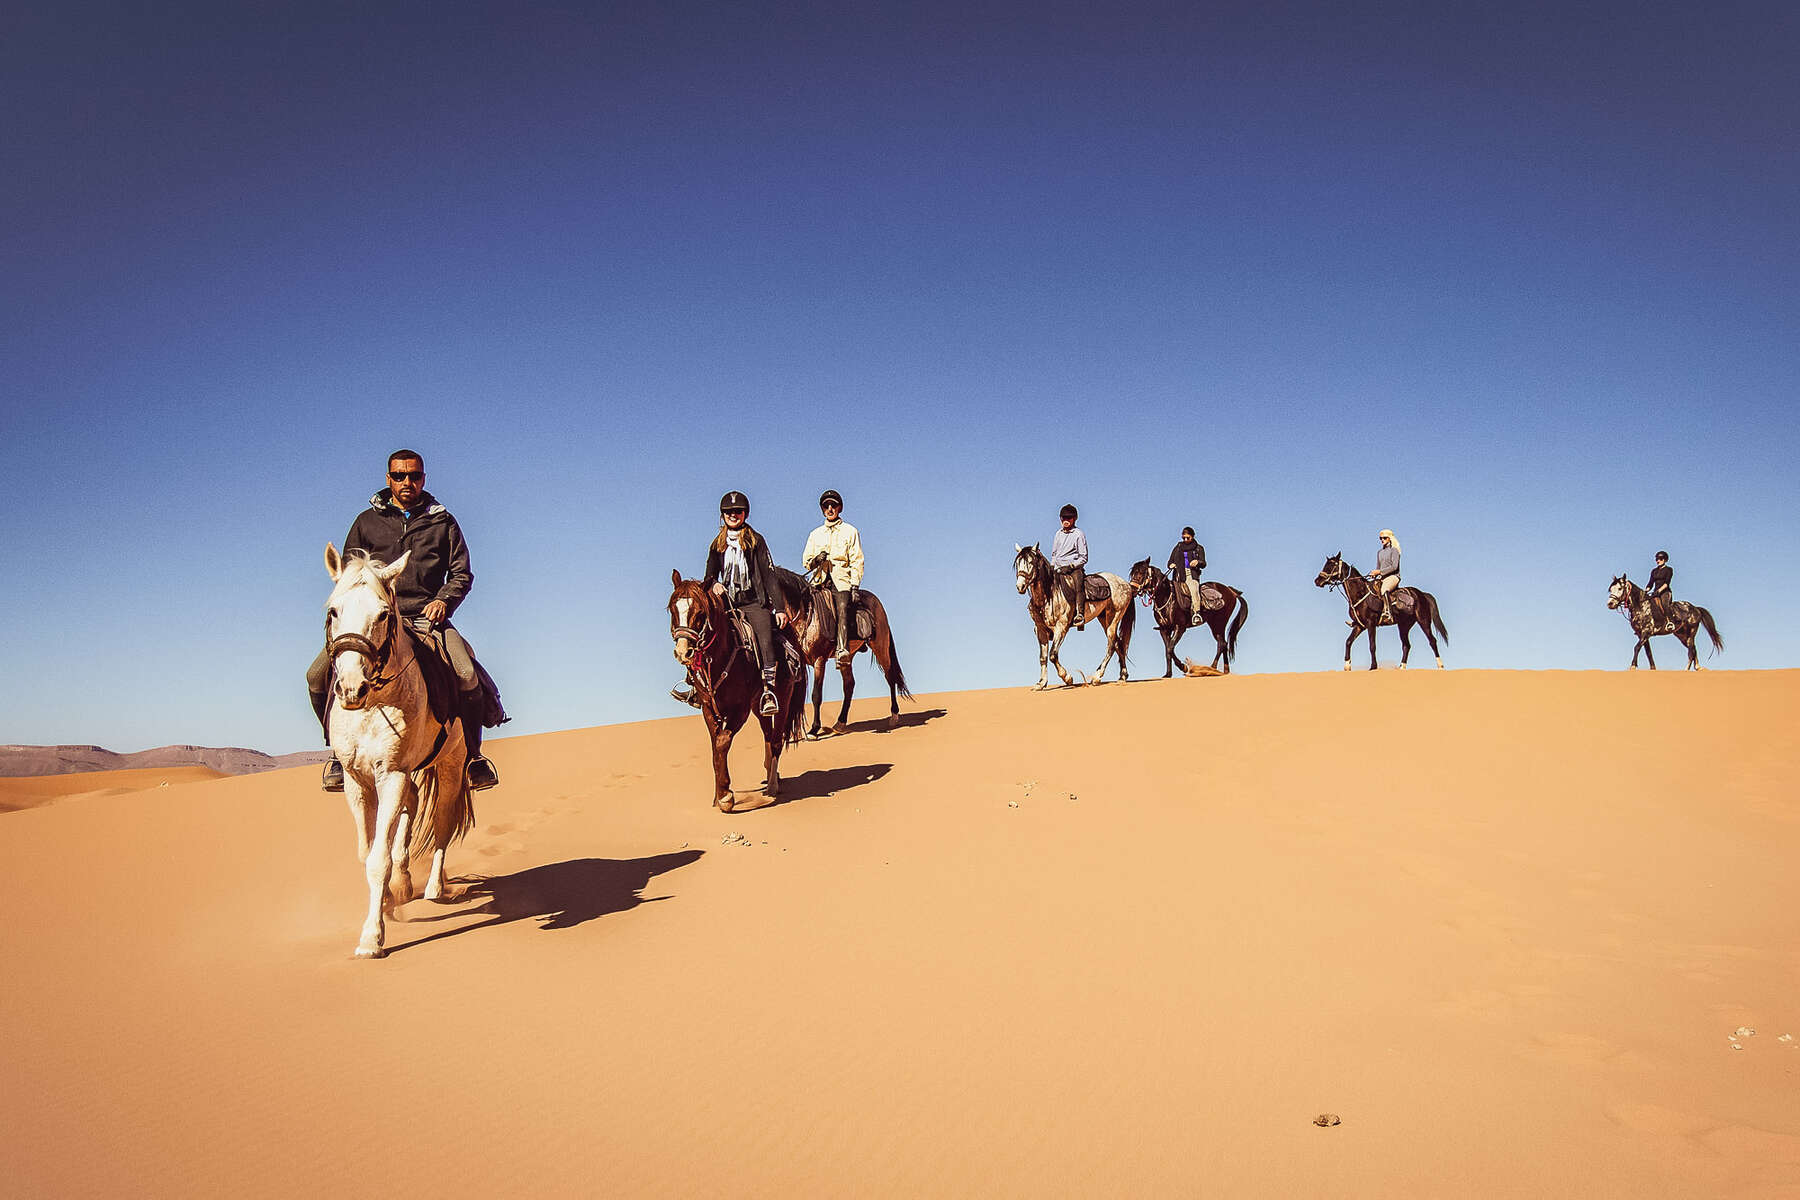 Riders in the dunes near Merzouga, Morocco